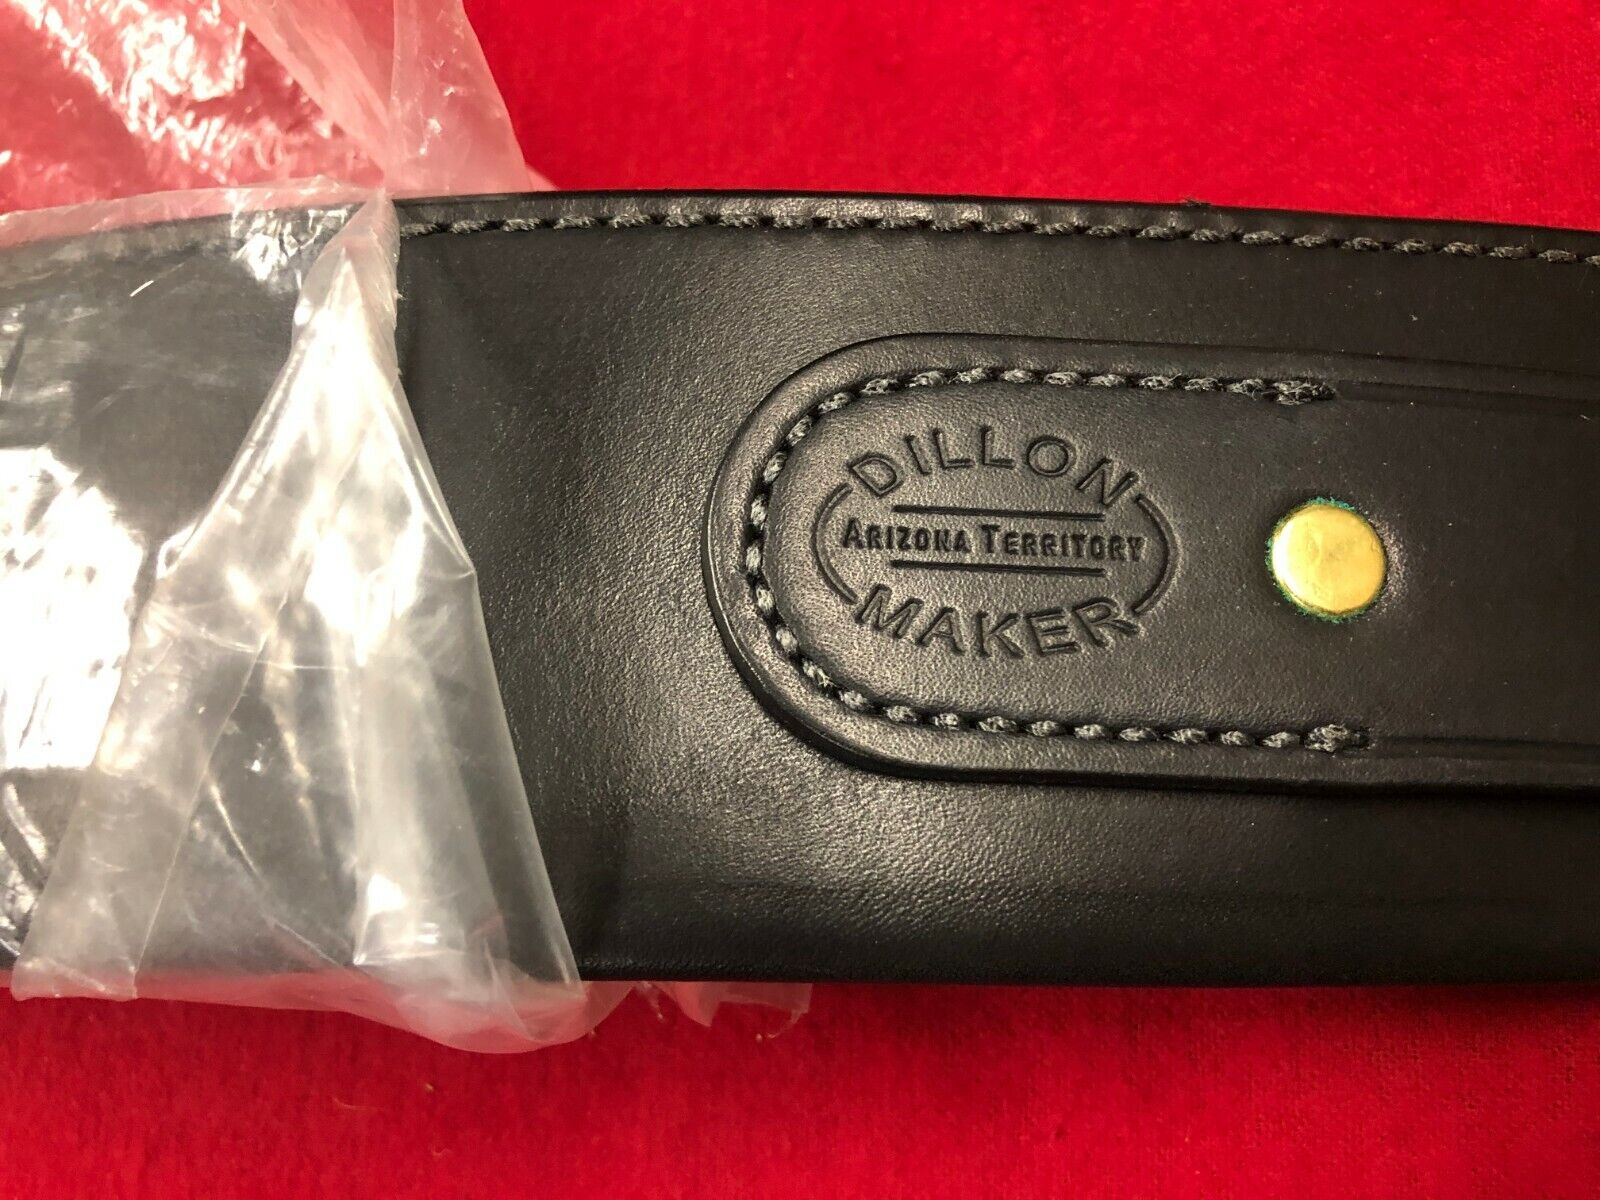 Dillon Precision  Arizona Leather  Money Gun Belt Size 36 w/